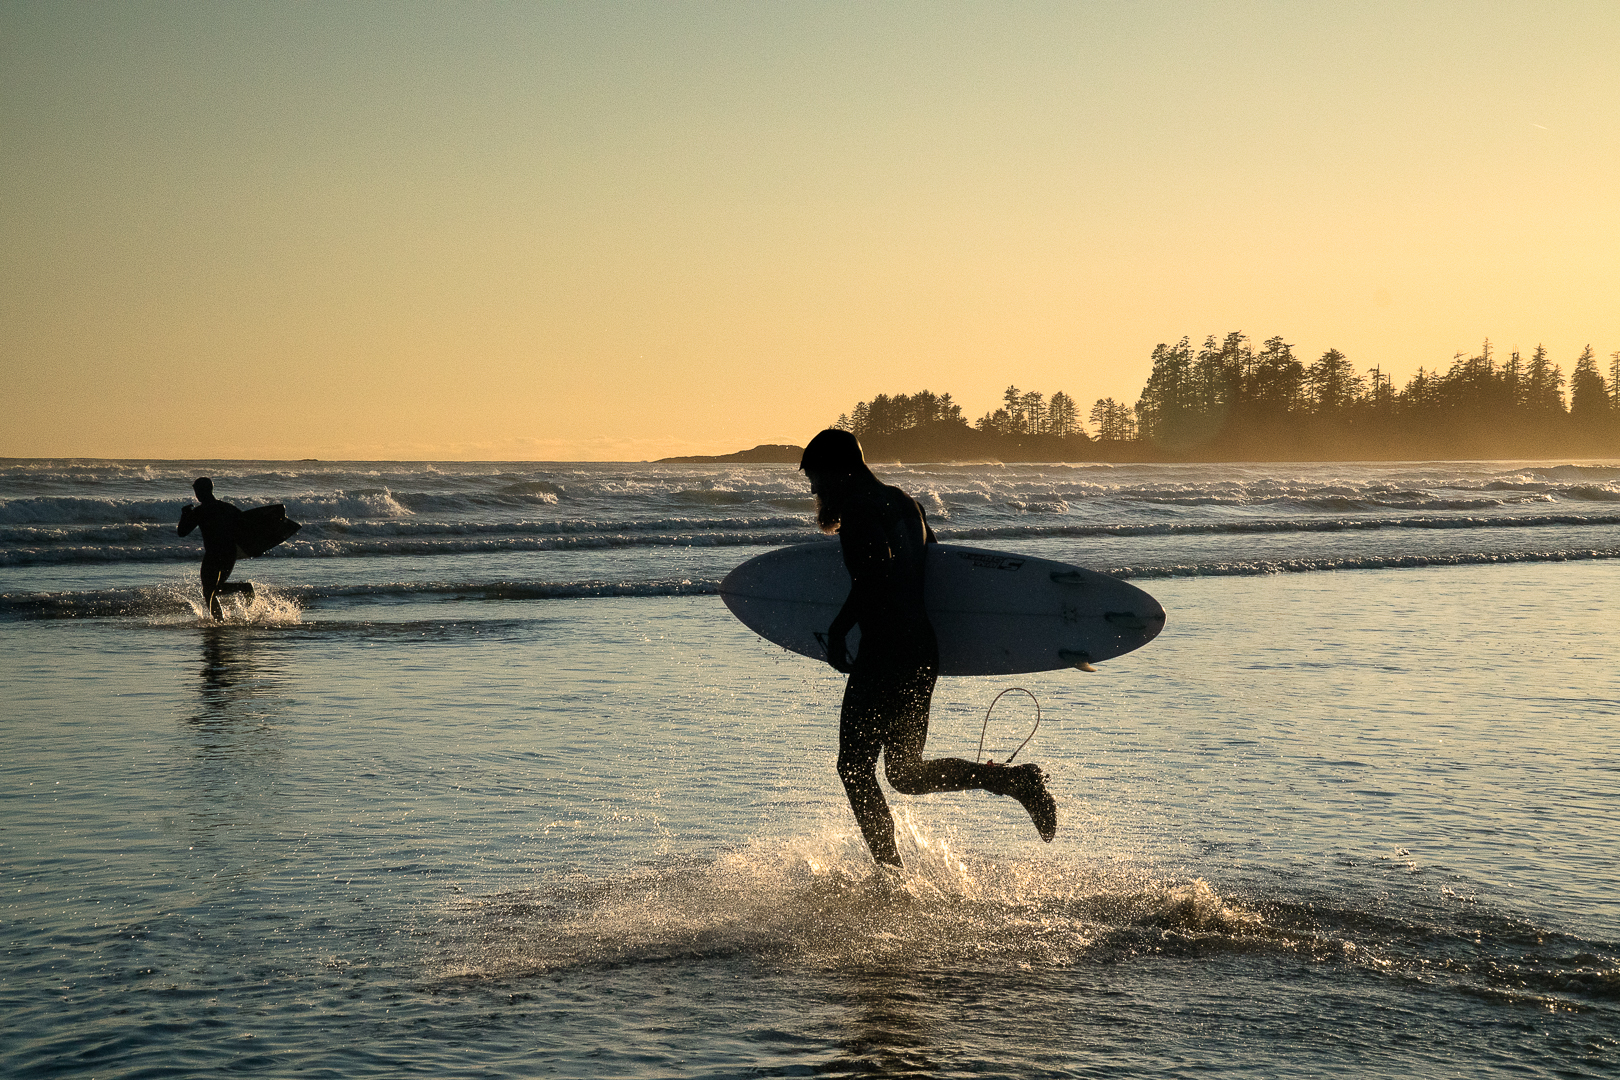 tofino-surfing-long-beach-herron-00915.jpg